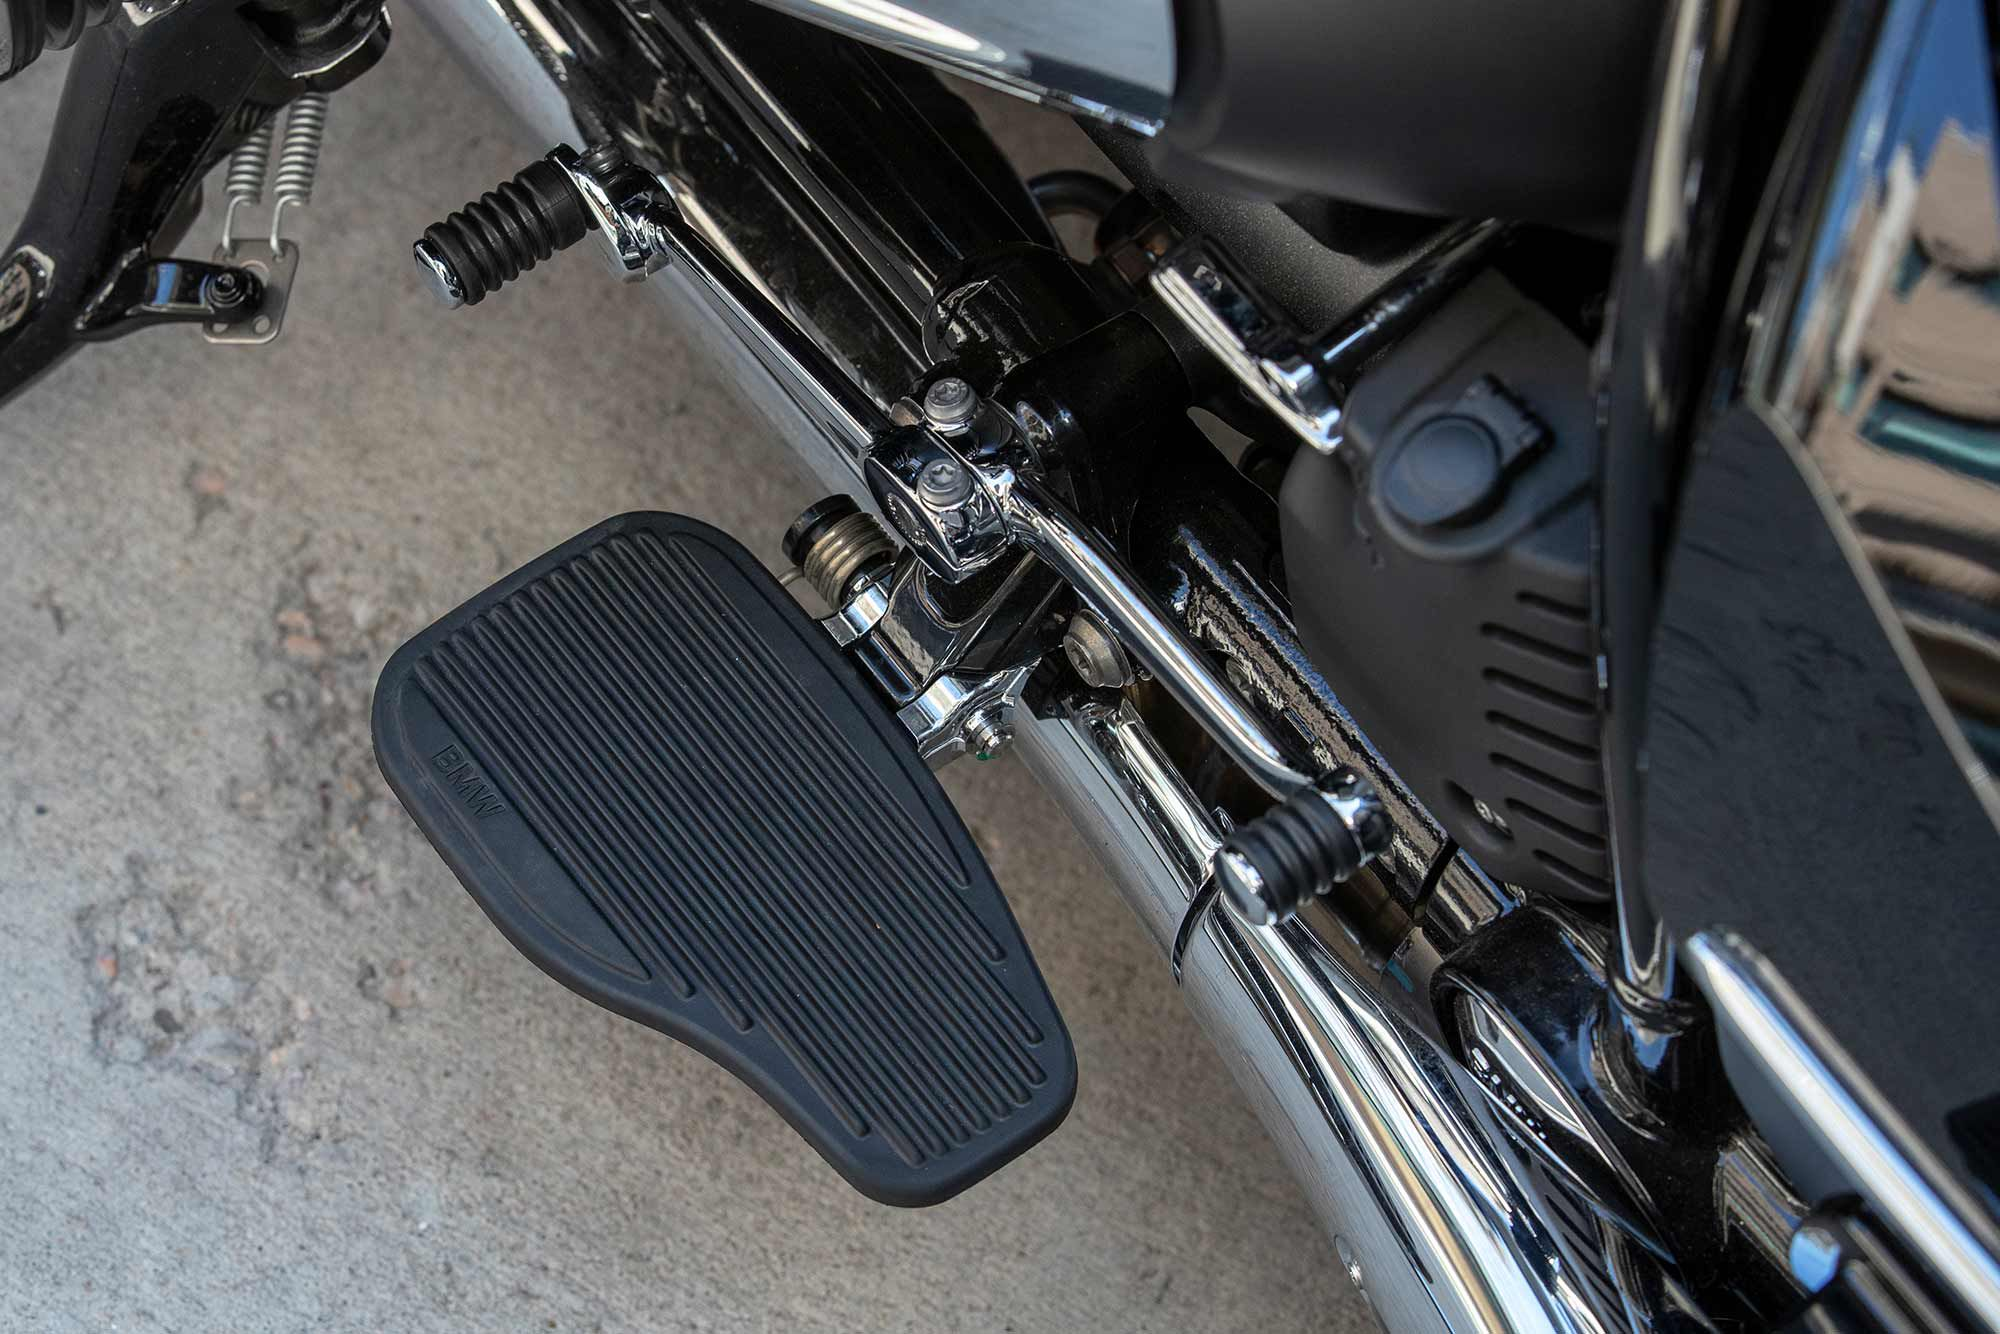 Floorboards are featured on the R 18 B and R 18 Transcontinental with independently adjustable heel-toe shifters and a further adjustable knob on the toe.